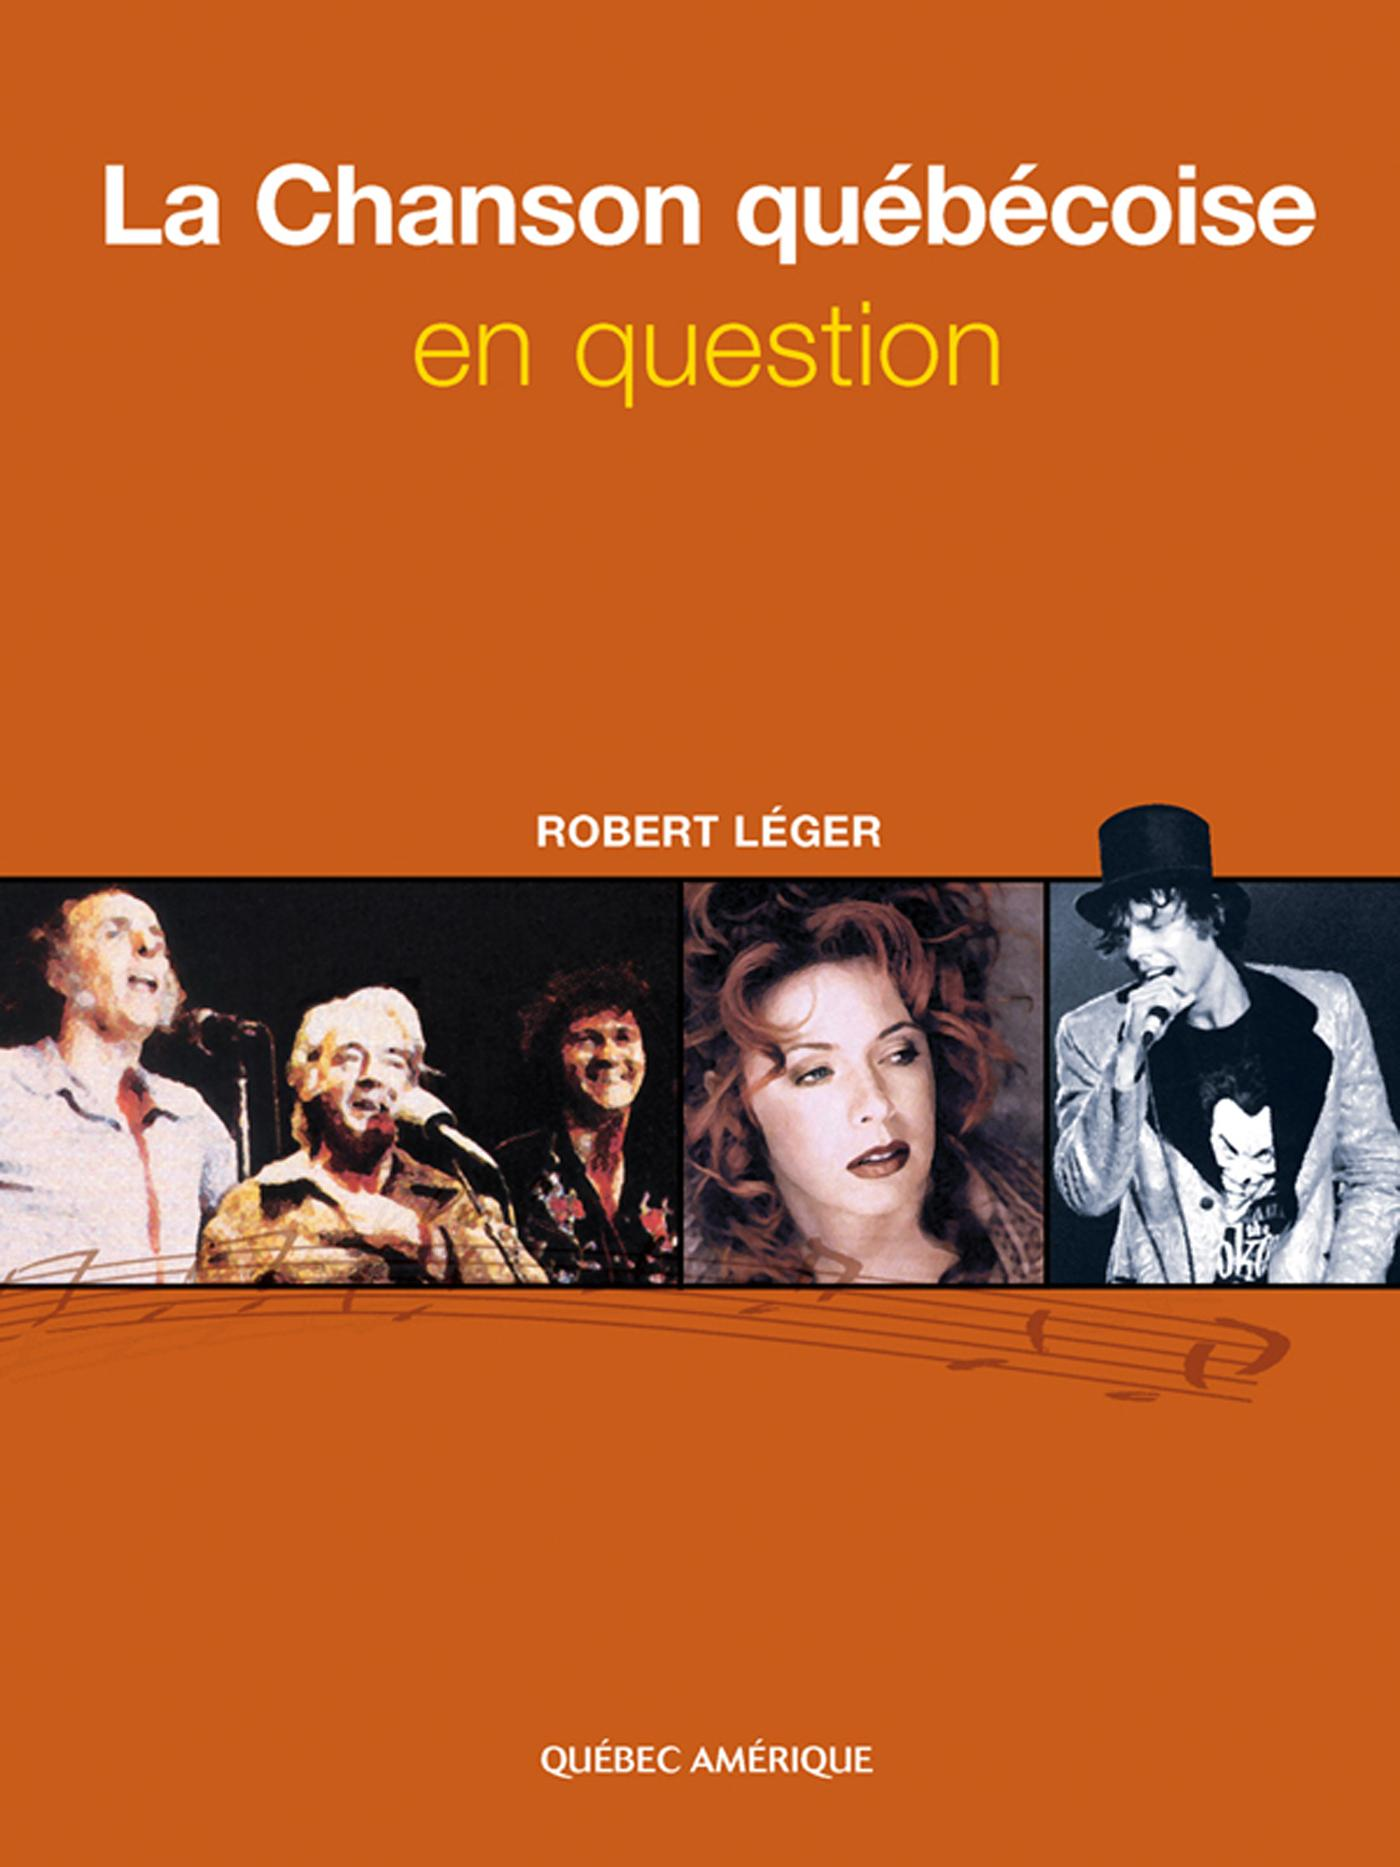 LA CHANSON QUEBECOISE EN QUESTION